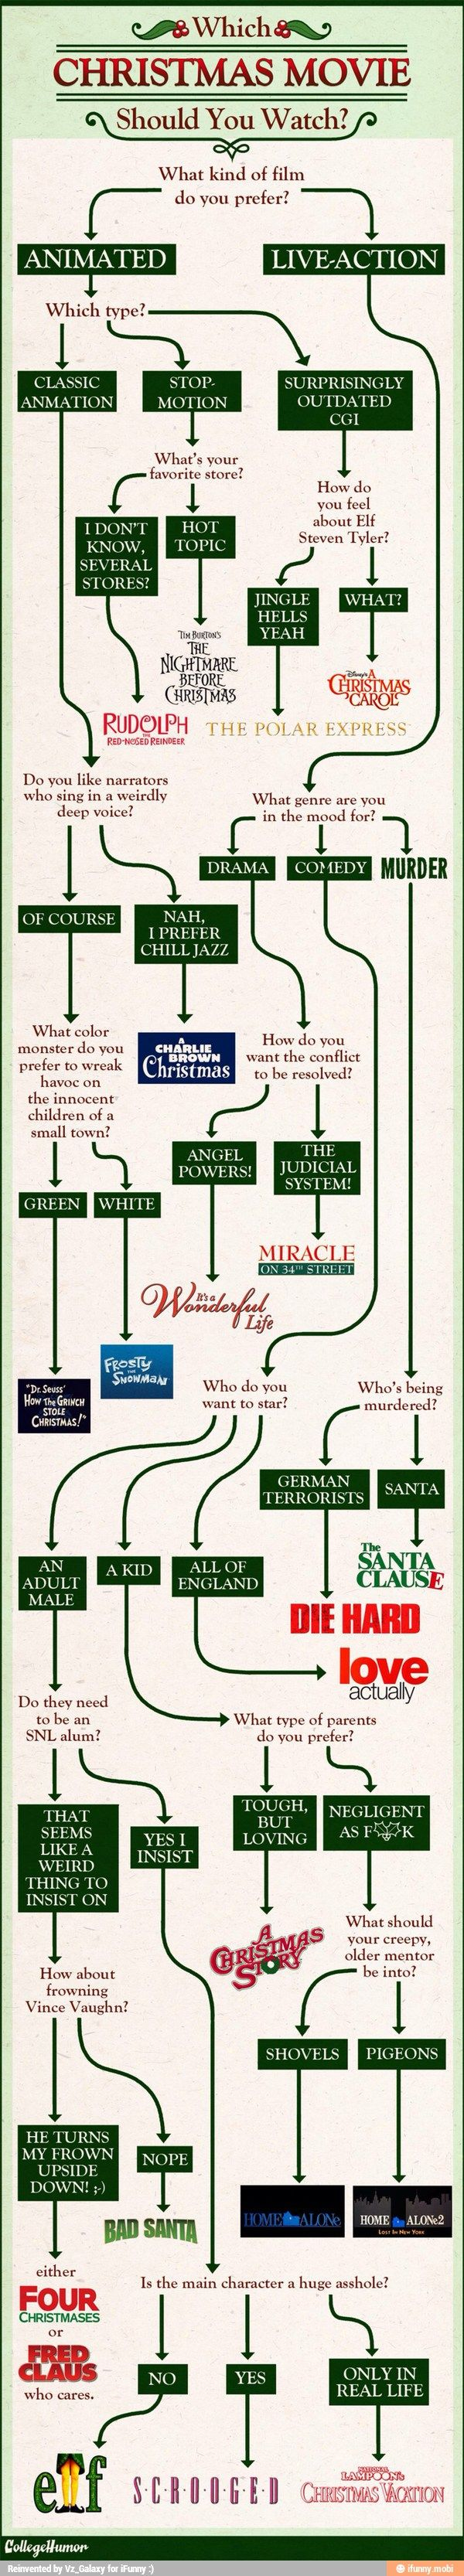 What Christmas Movie Should I Watch? [INFOGRAPHIC] via @funyday